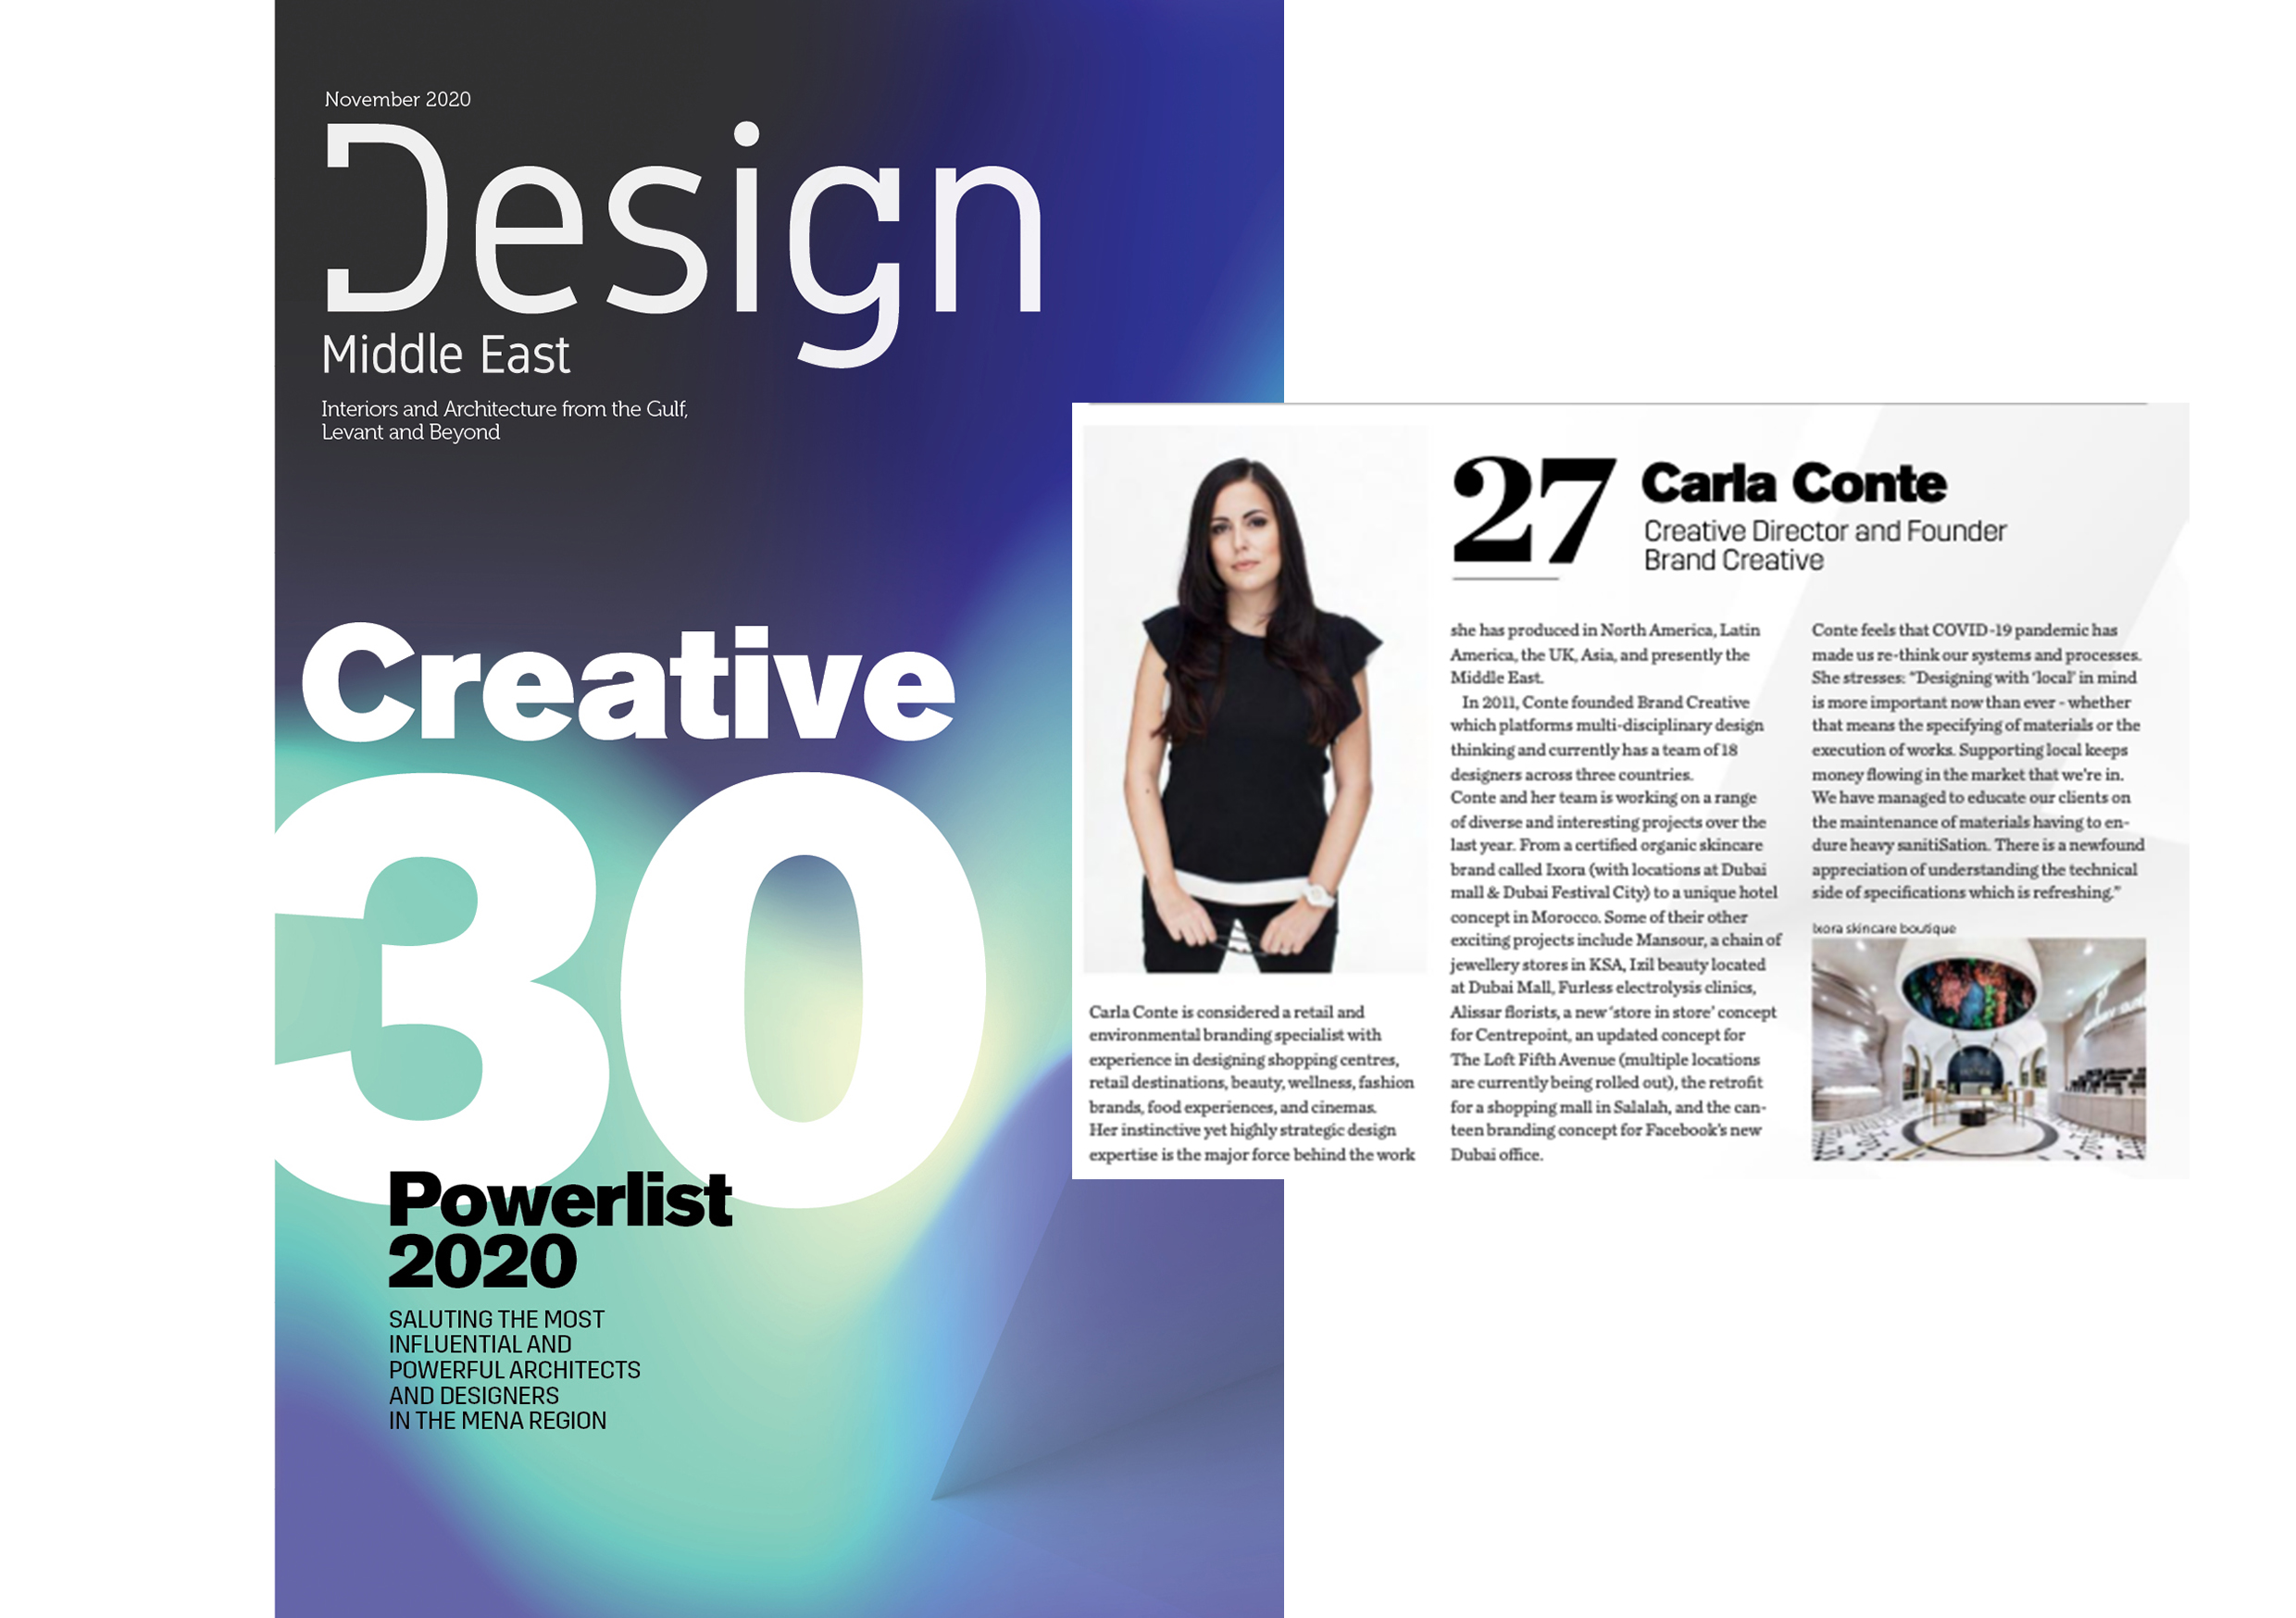 Brand Creative's Founder & Creative Director Features in Design Middle East's Creative 30 List